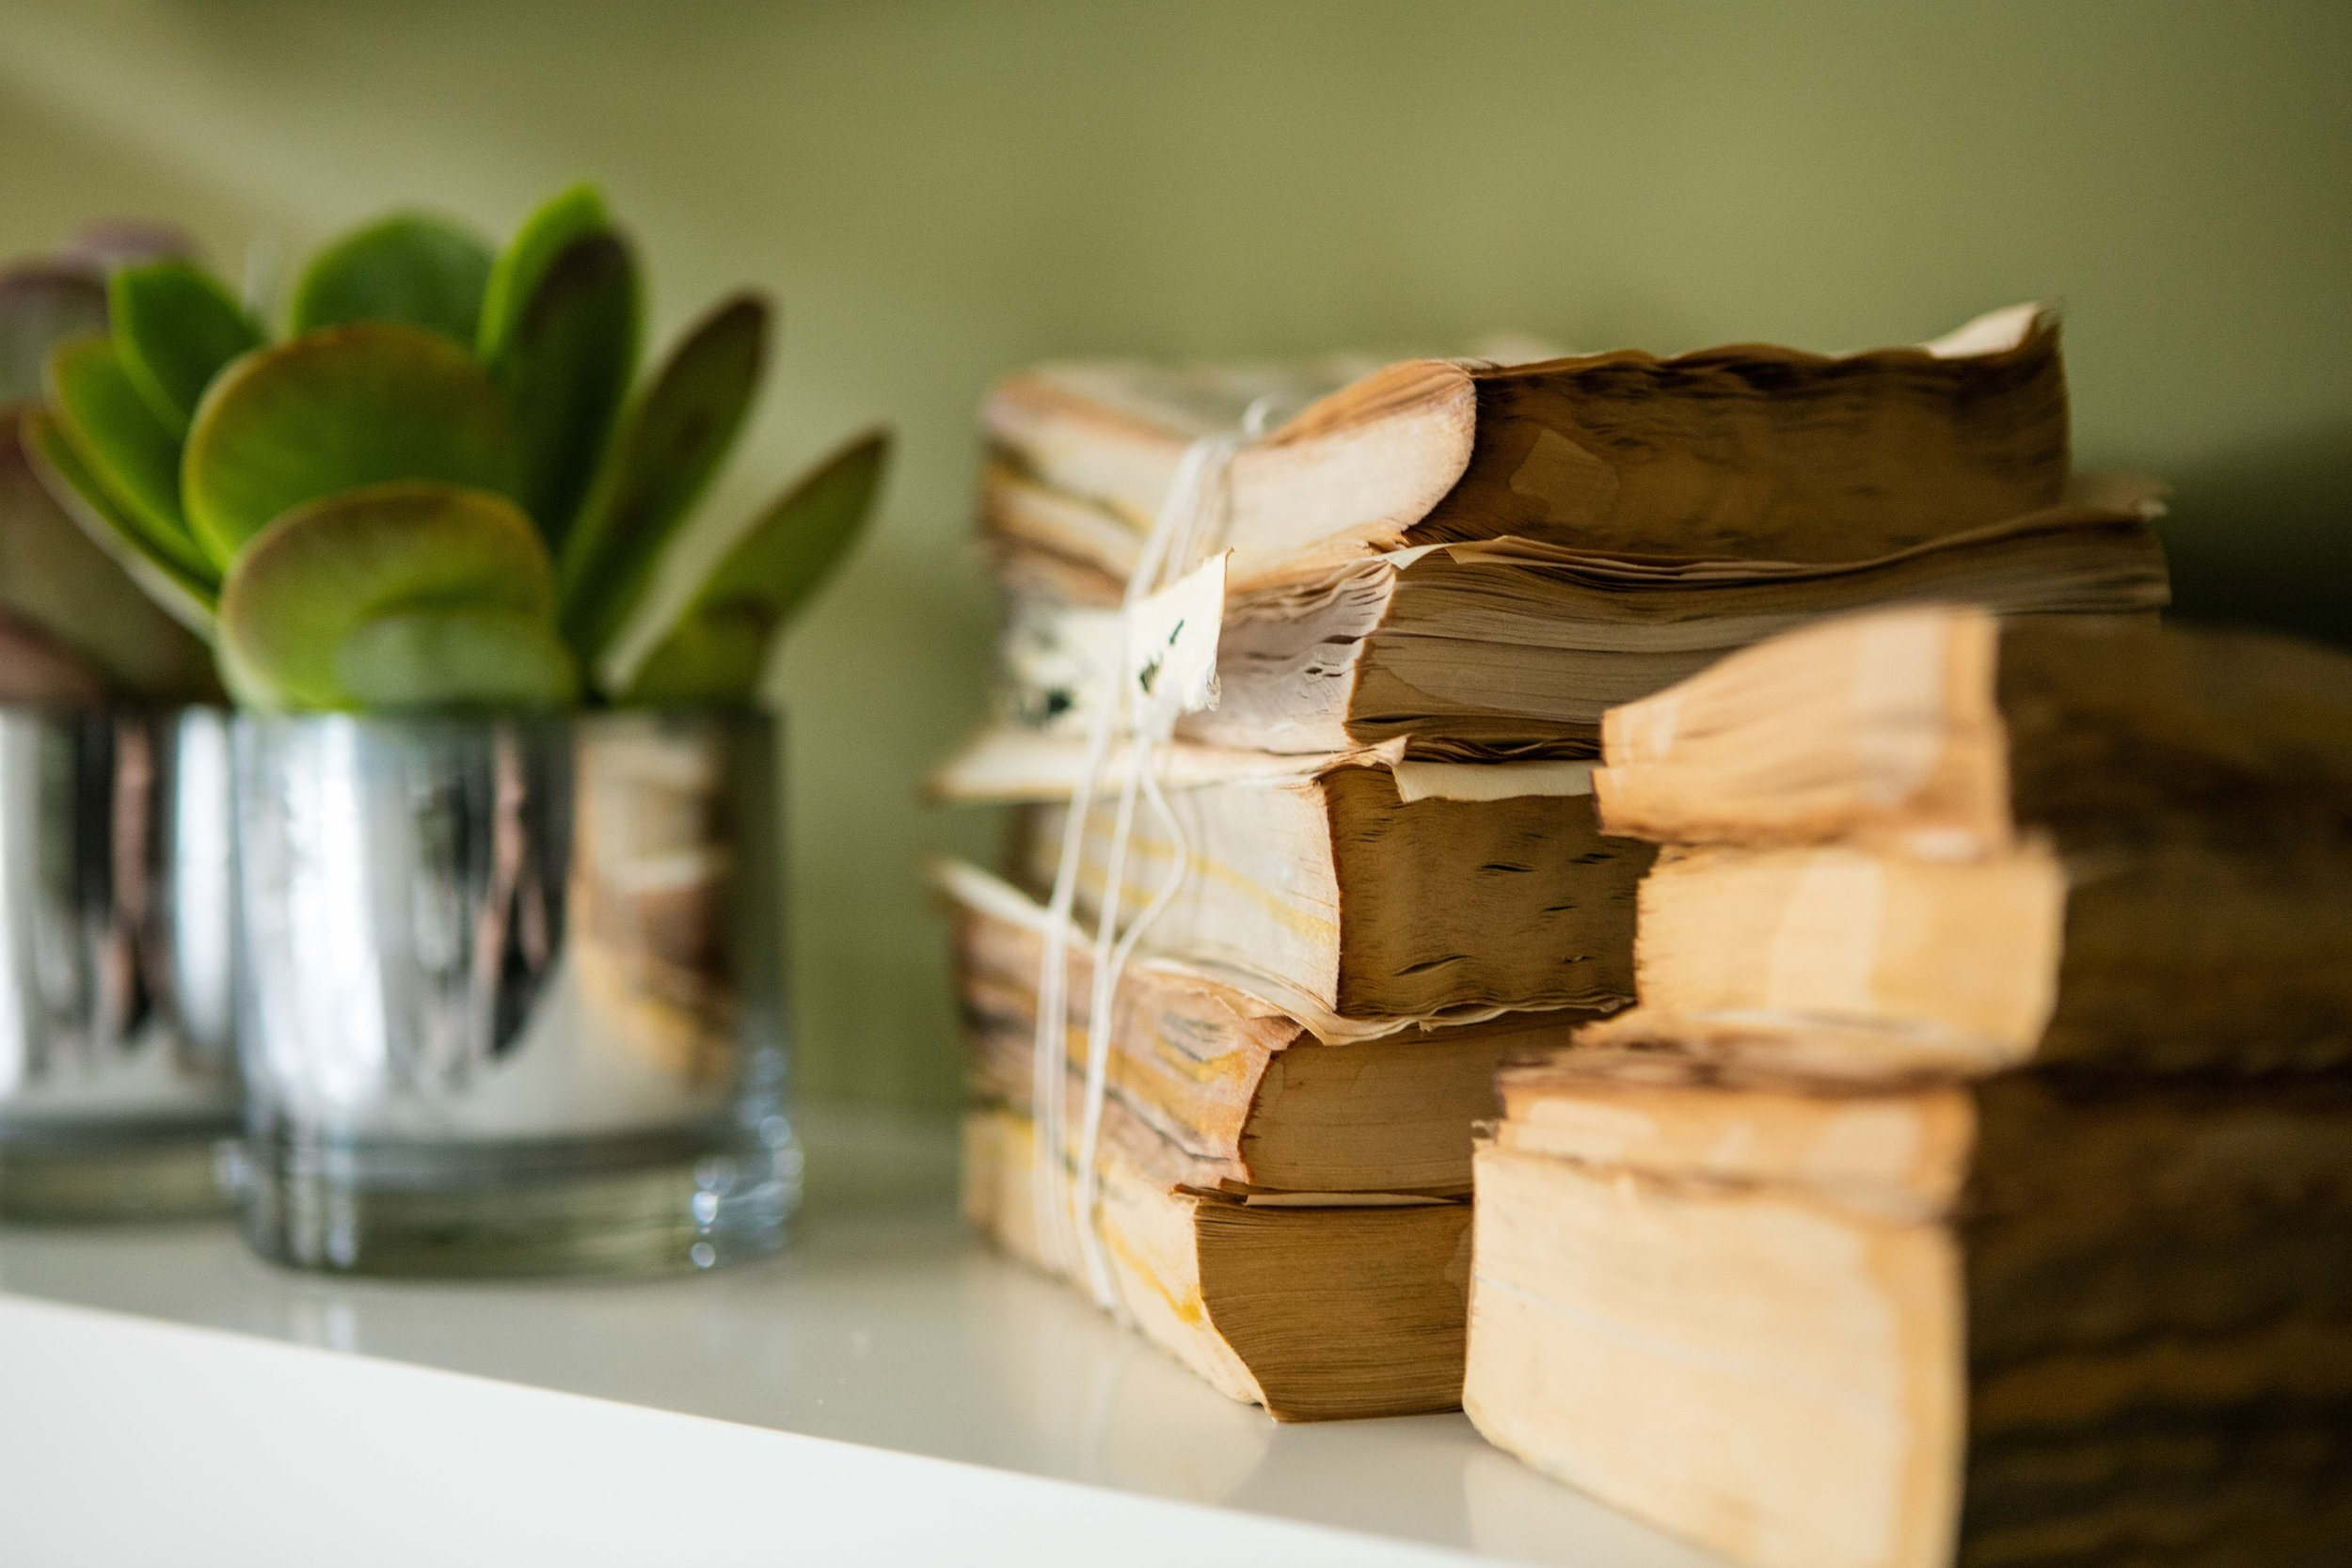 Aged looking books can be created by putting old books in the oven after dousing them in tea.